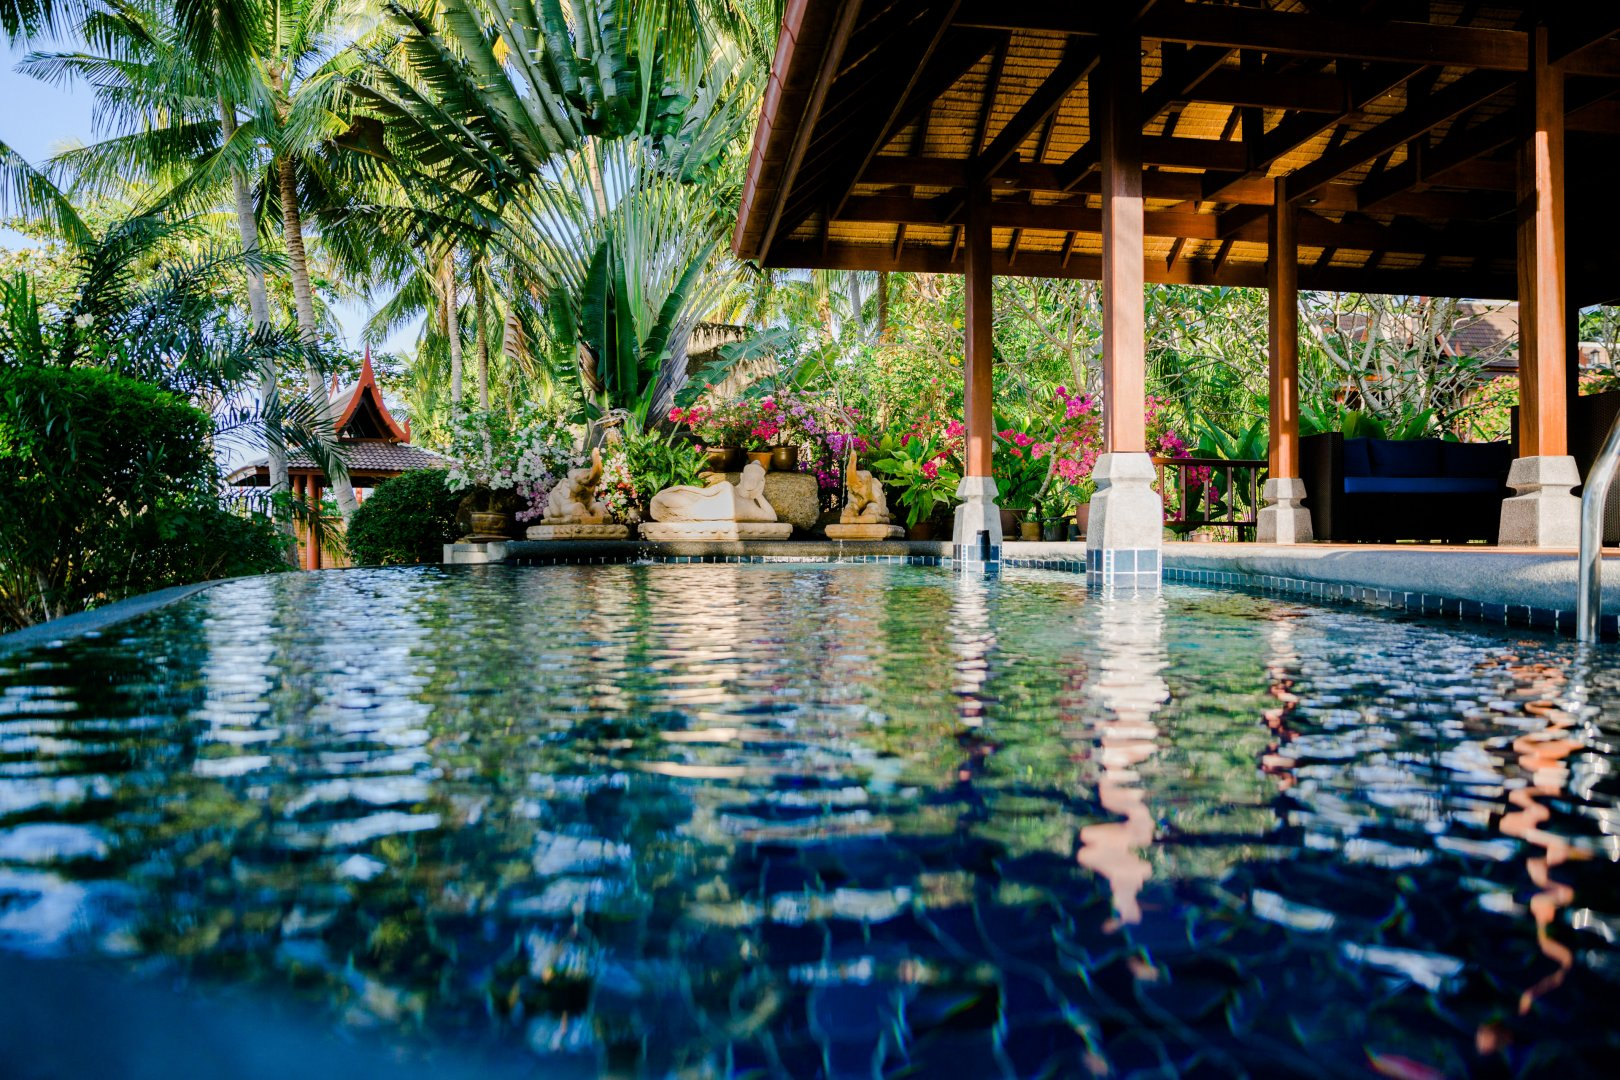 Swimming pool Resort Leisure Property Vacation Water Building Reflecting pool Tree House Real estate Hotel Palm tree Eco hotel Architecture Tropics Arecales Pond Leisure centre Villa Plant Resort town Home Hacienda Estate Tourism Spa town